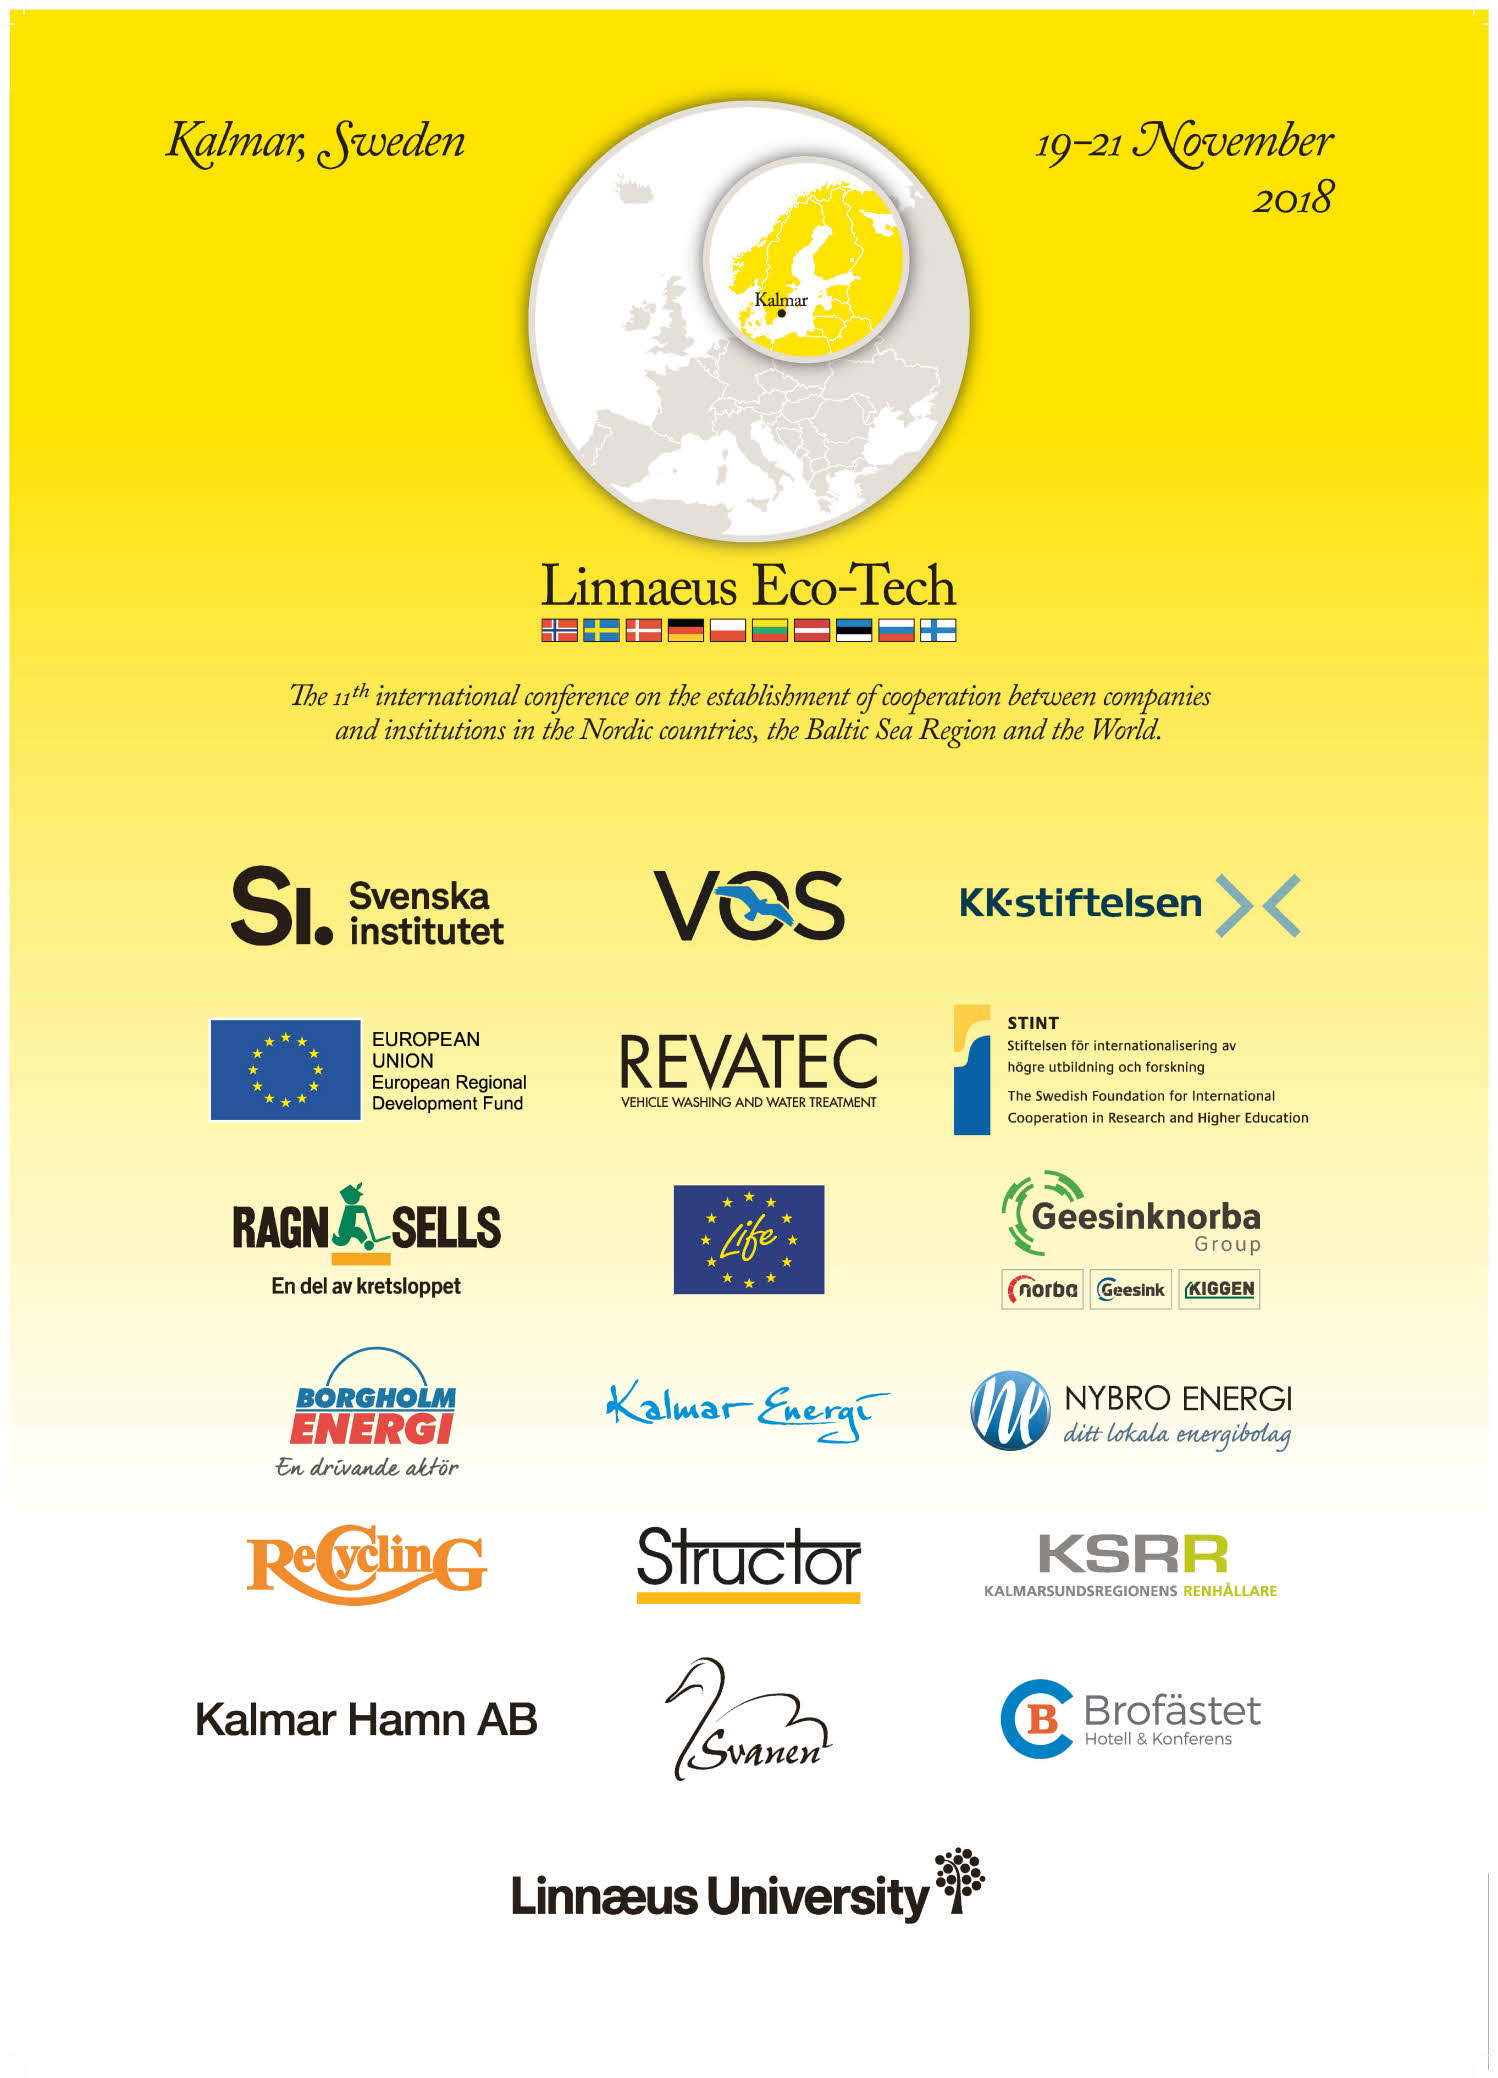 Sponsors of Linnaeus Eco-Tech 2018